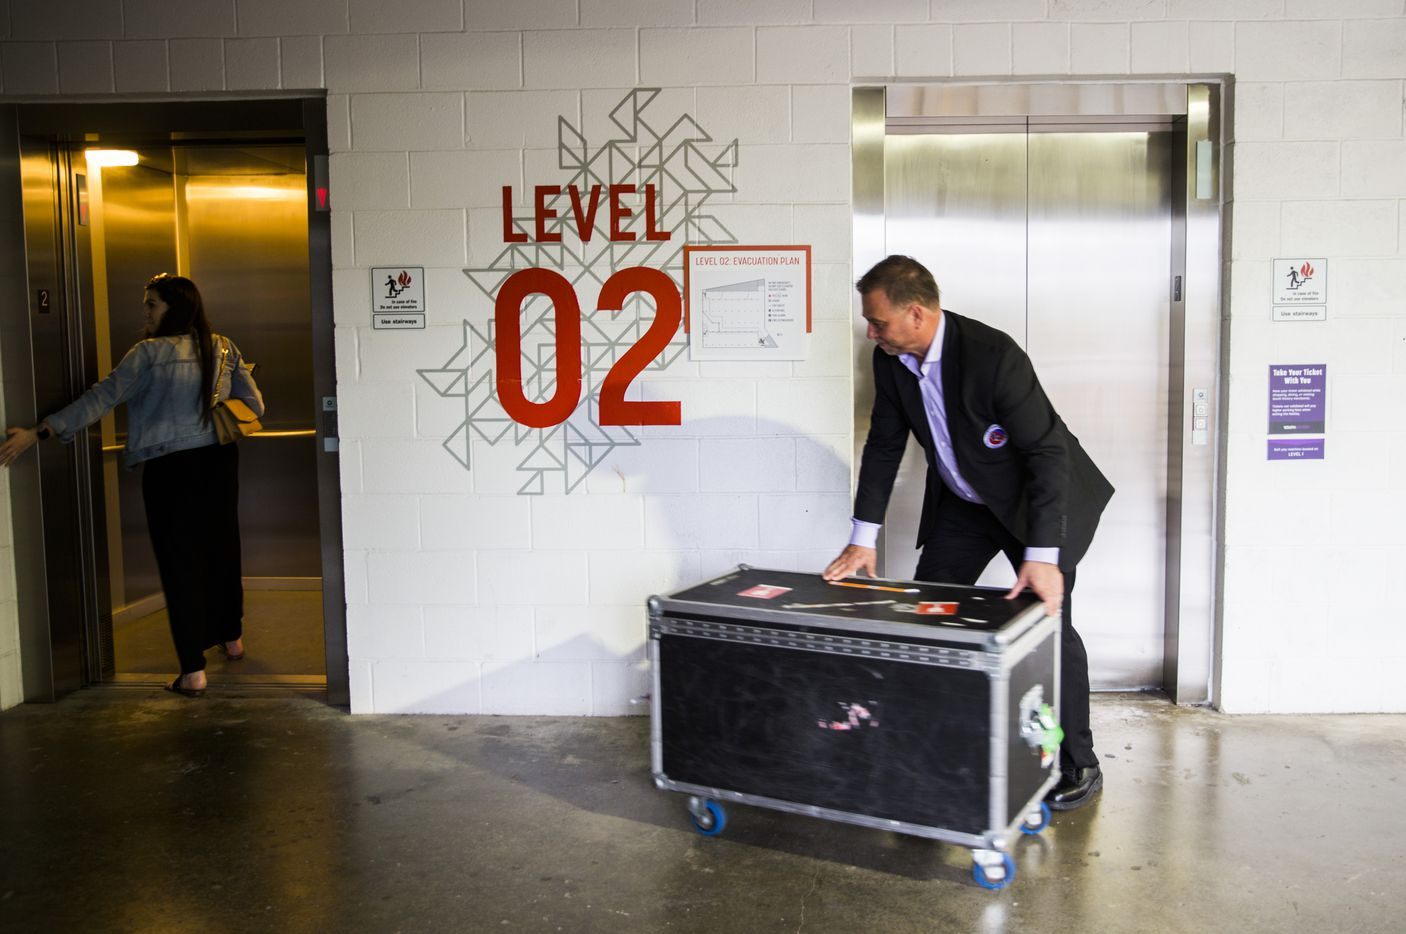 Stanley Cup keeper Howie Borrow and Lauren Montgomery of Allied Global Marketing wheel a box containing the Stanley Cup to a location outside American Airlines Center before Game 6 of the Stars-Predators series.